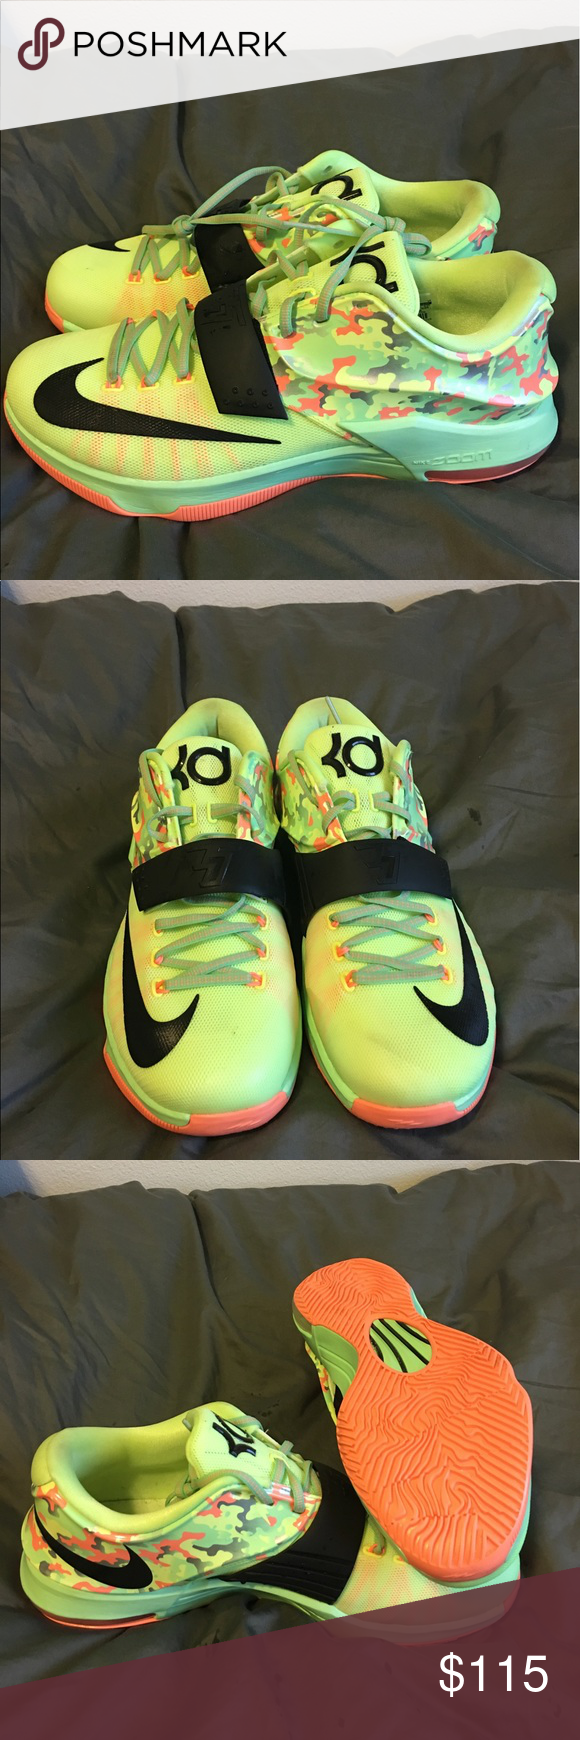 quality design ad500 9309d Nike KD 7 Easter Liquid Lime Brand new, never worn Nike KD7 Liquid Lime size